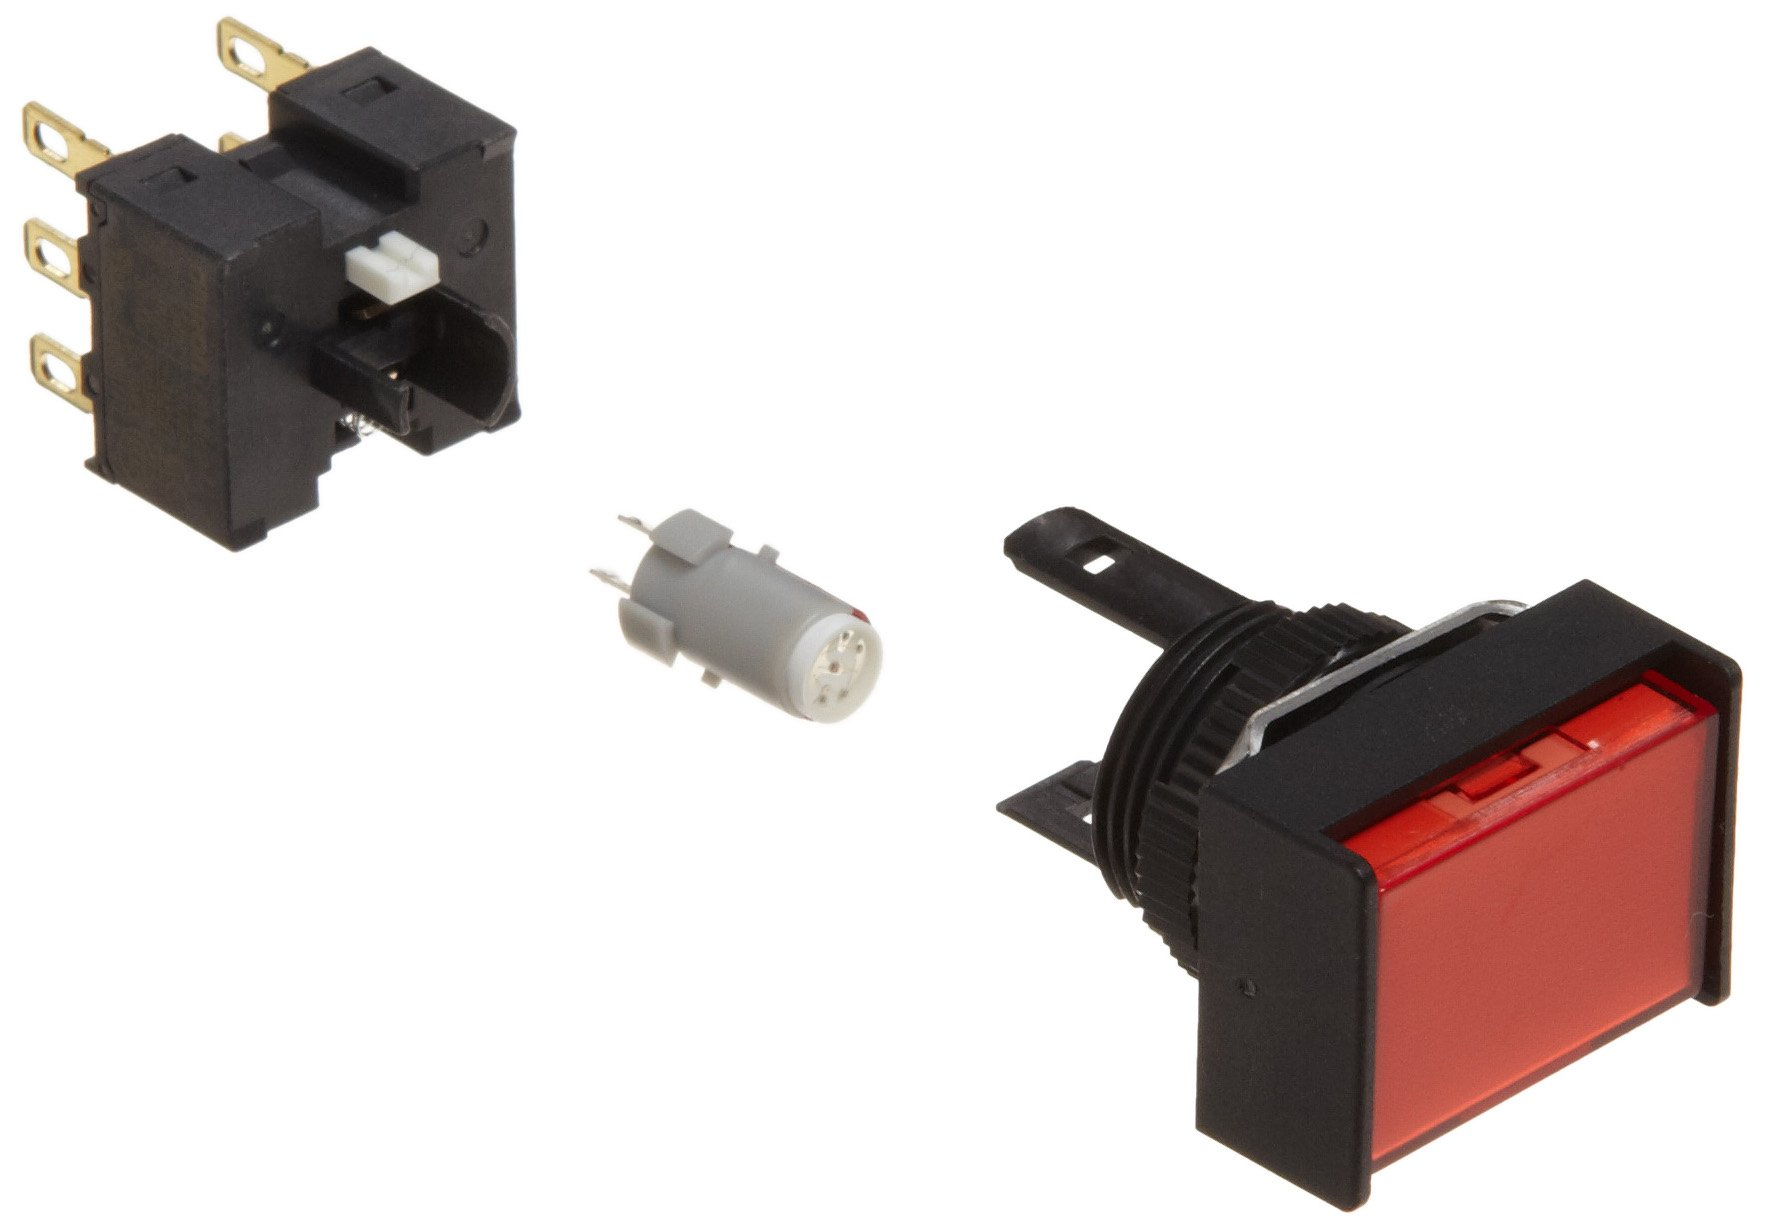 Omron A165L-JRM-12D-2 Two Way Guard Type Pushbutton and Switch, Solder Terminal, IP65 Oil-Resistant, 16mm Mounting Aperture, LED Lighted, Momentary Operation, Rectangular, Red,12 VDC Rated Voltage, Double Pole Double Throw Contacts